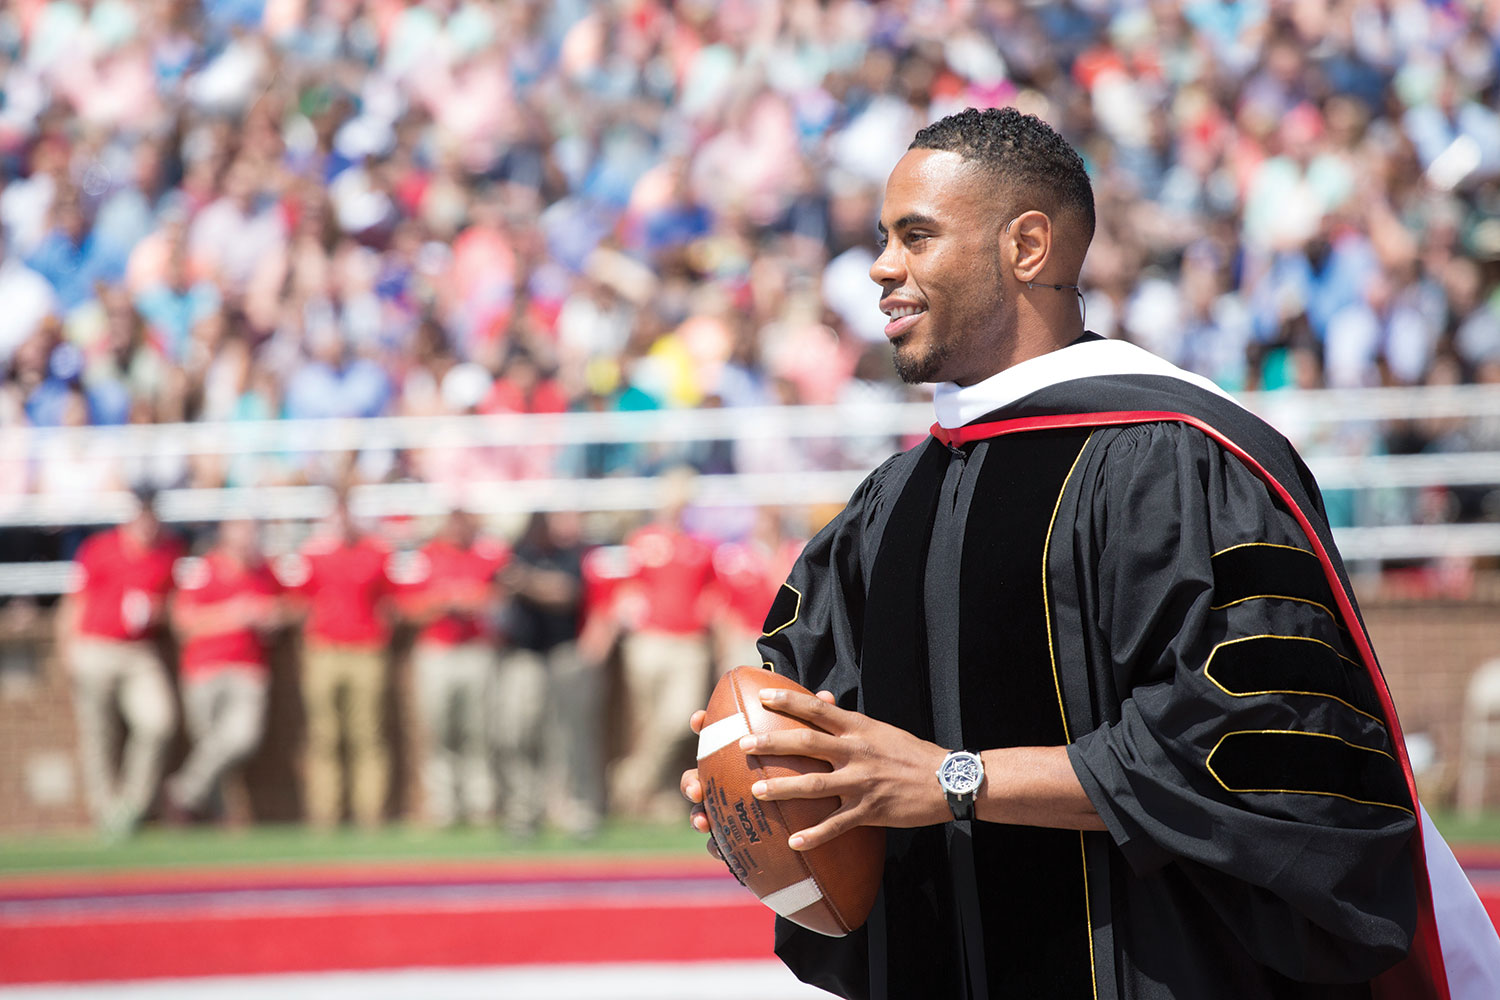 Rashad Jennings threw an autographed football into the crowd of graduates after his speech.